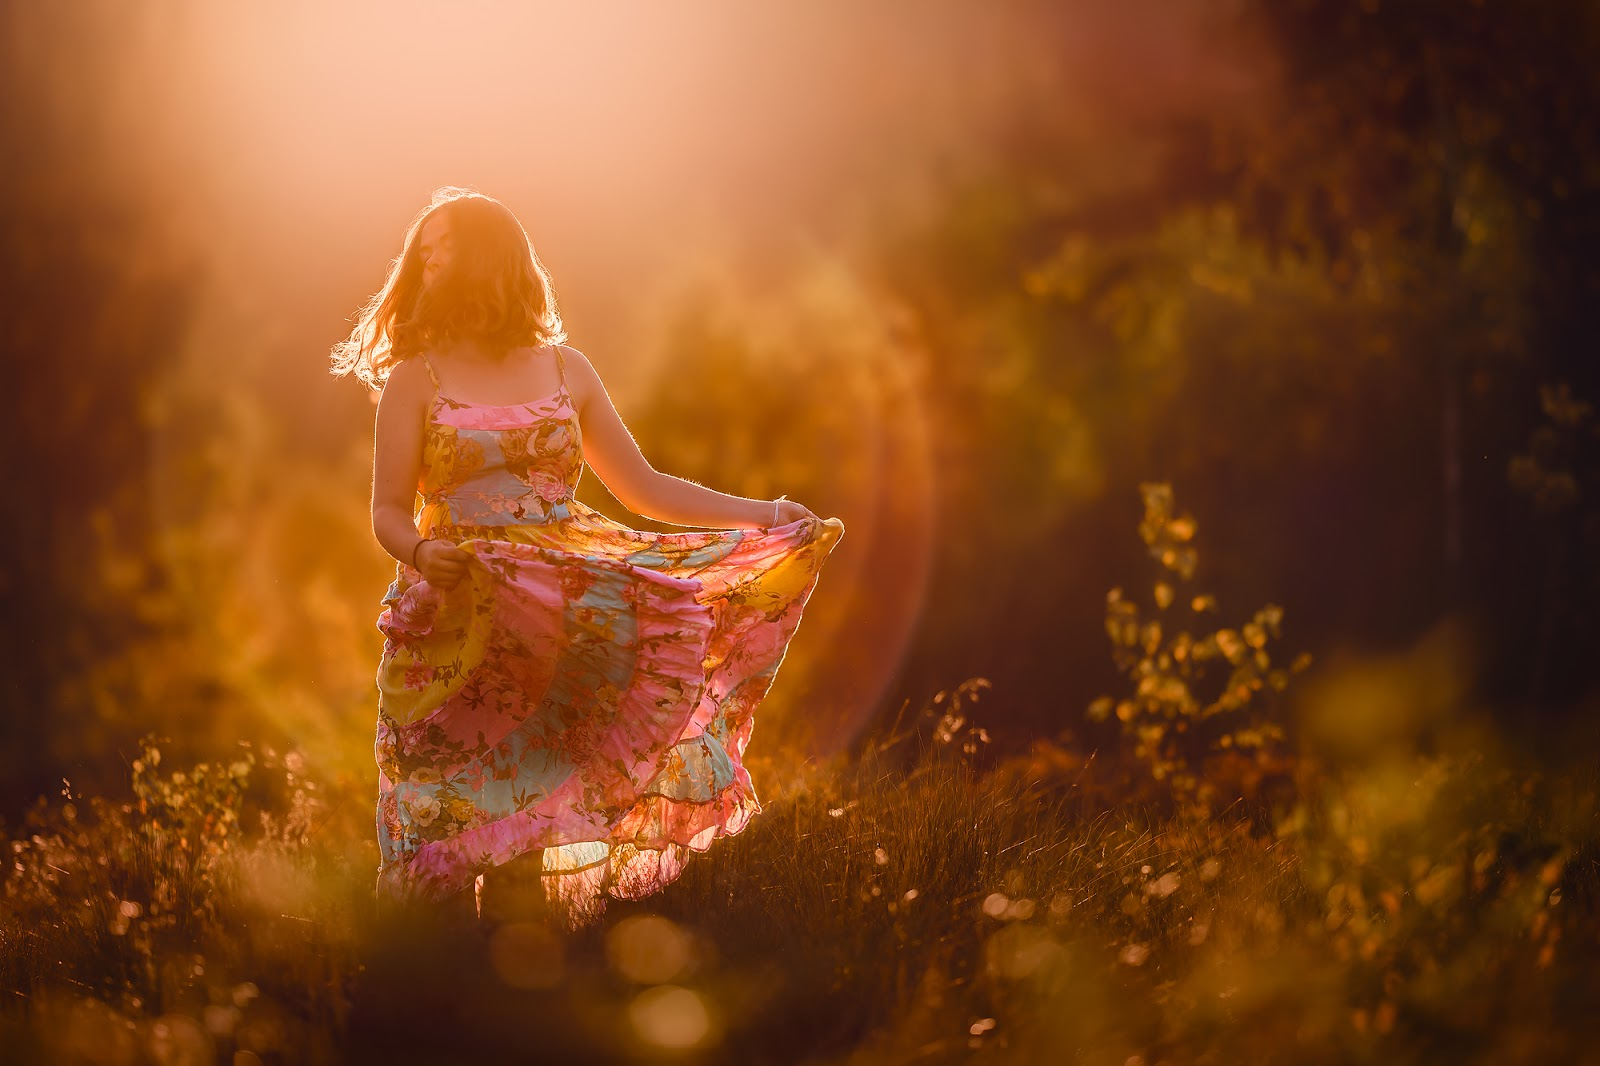 Canon 5D mark III sigma fine art portrait of a young woman in a vnitage dress dancing in the golden hour with her soul on fire by Willie Kers.jpg